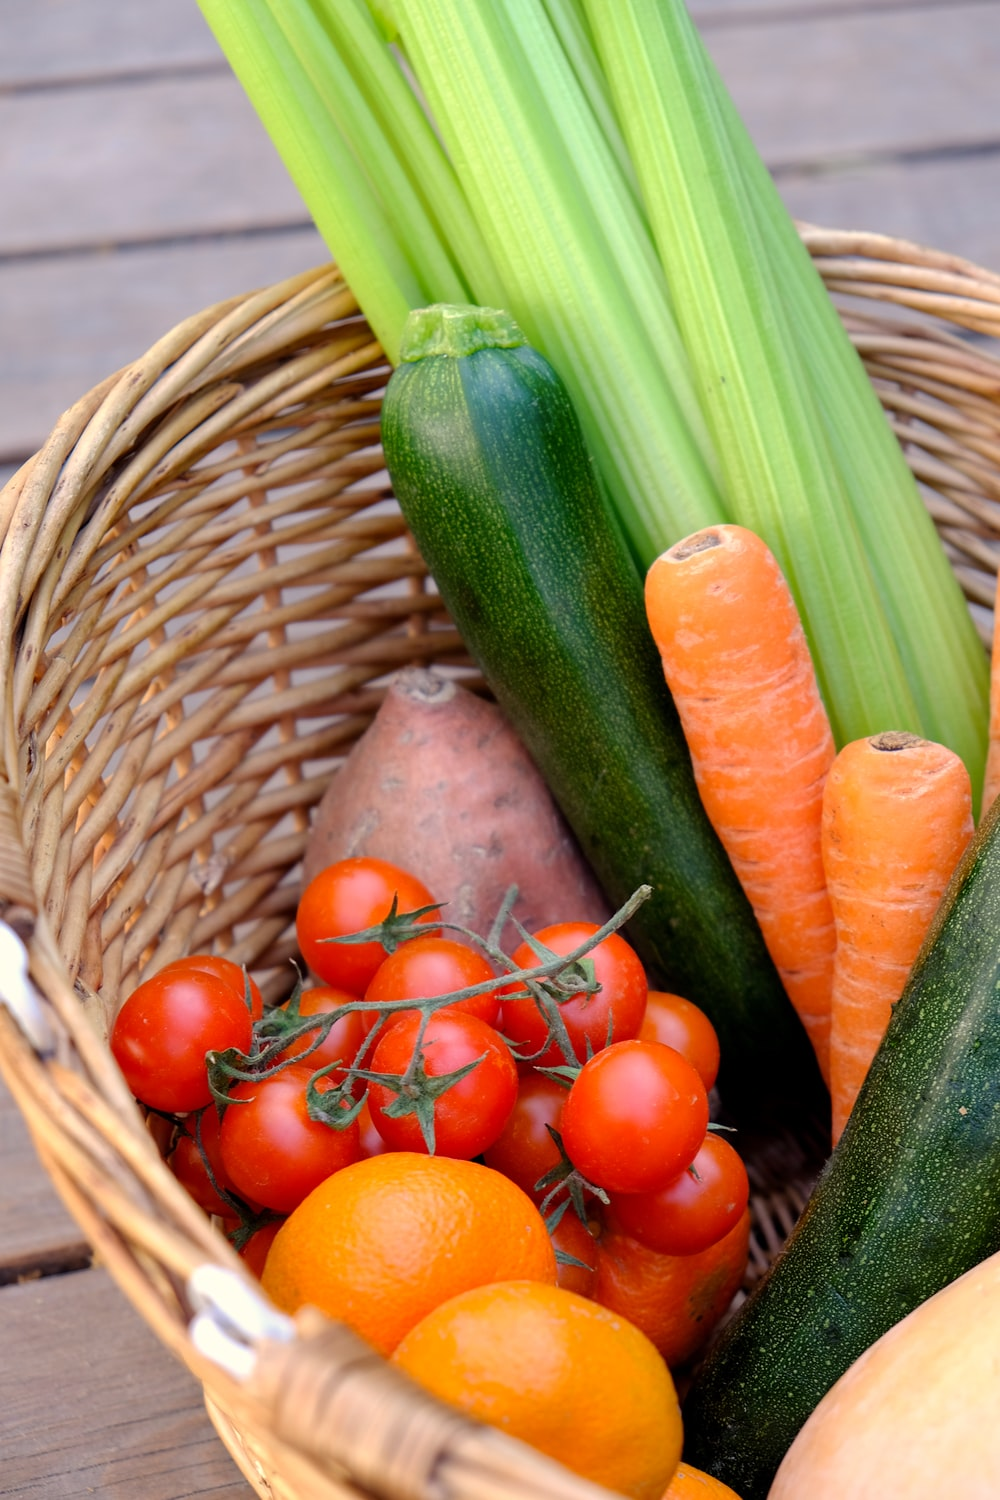 carrots and cucumber on brown woven basket